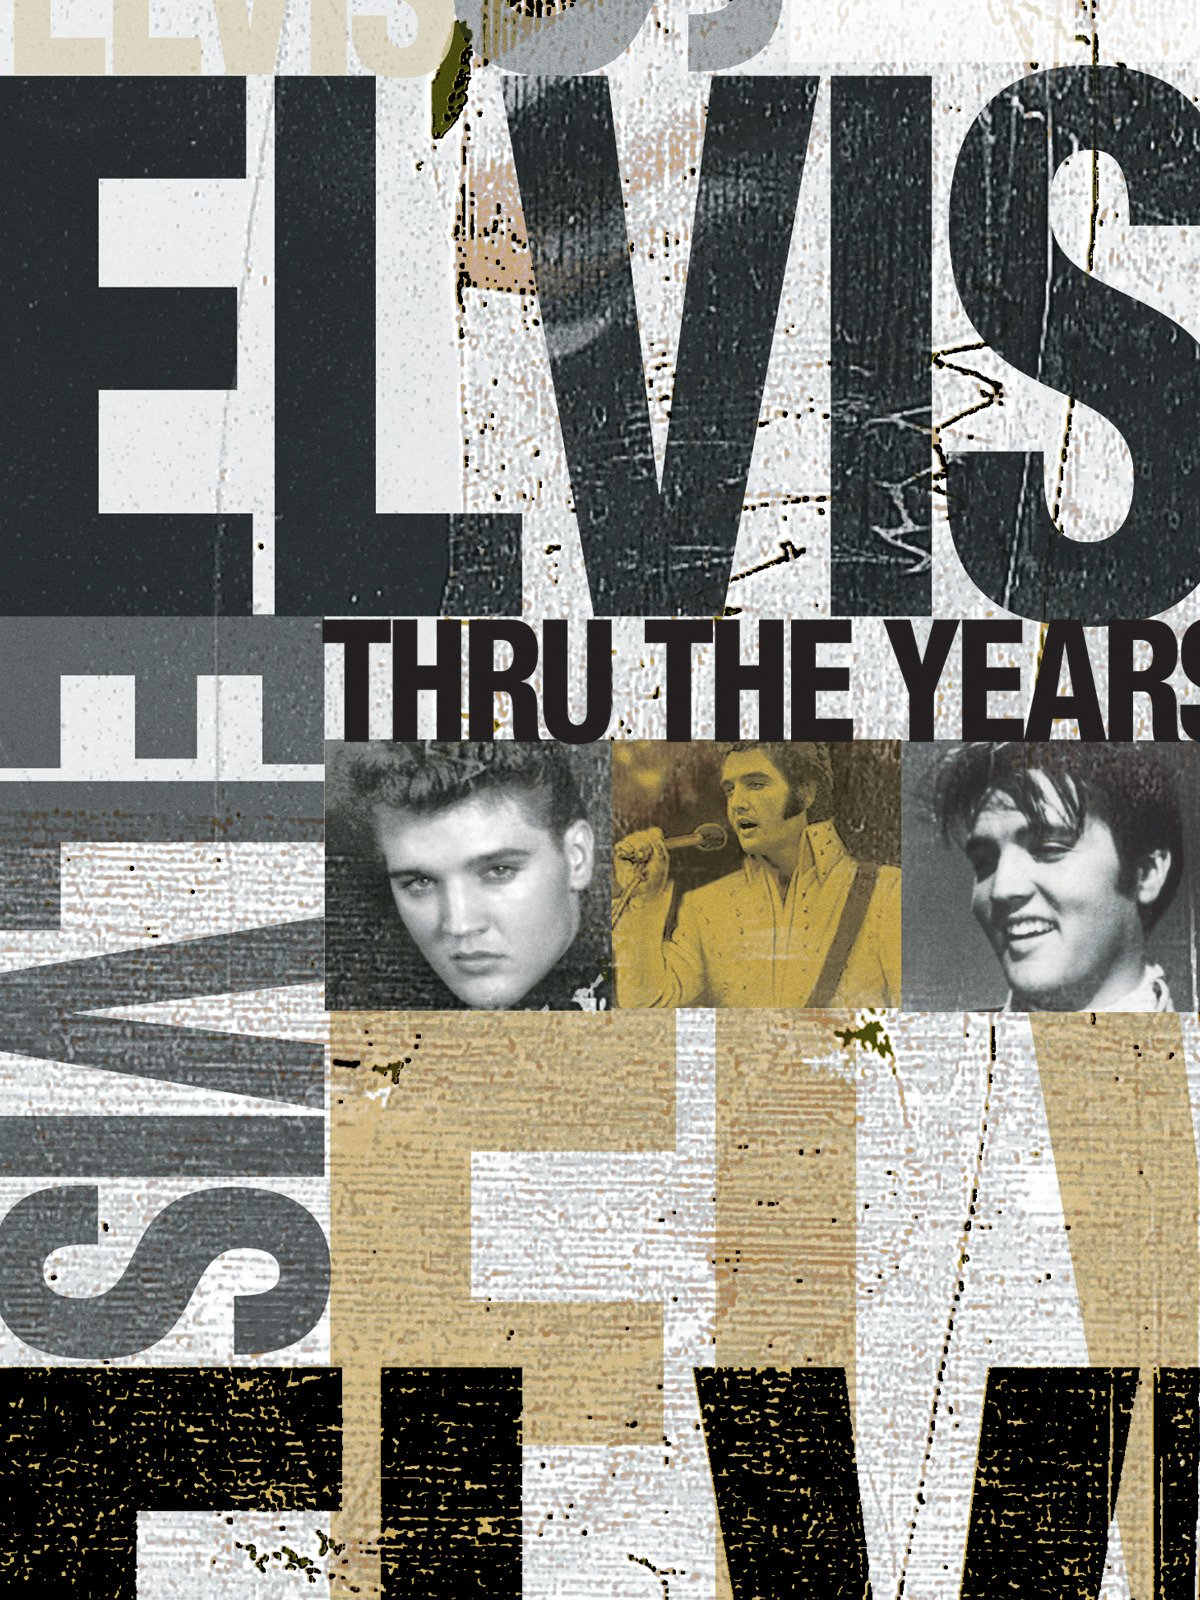 Elvis Thru The Years